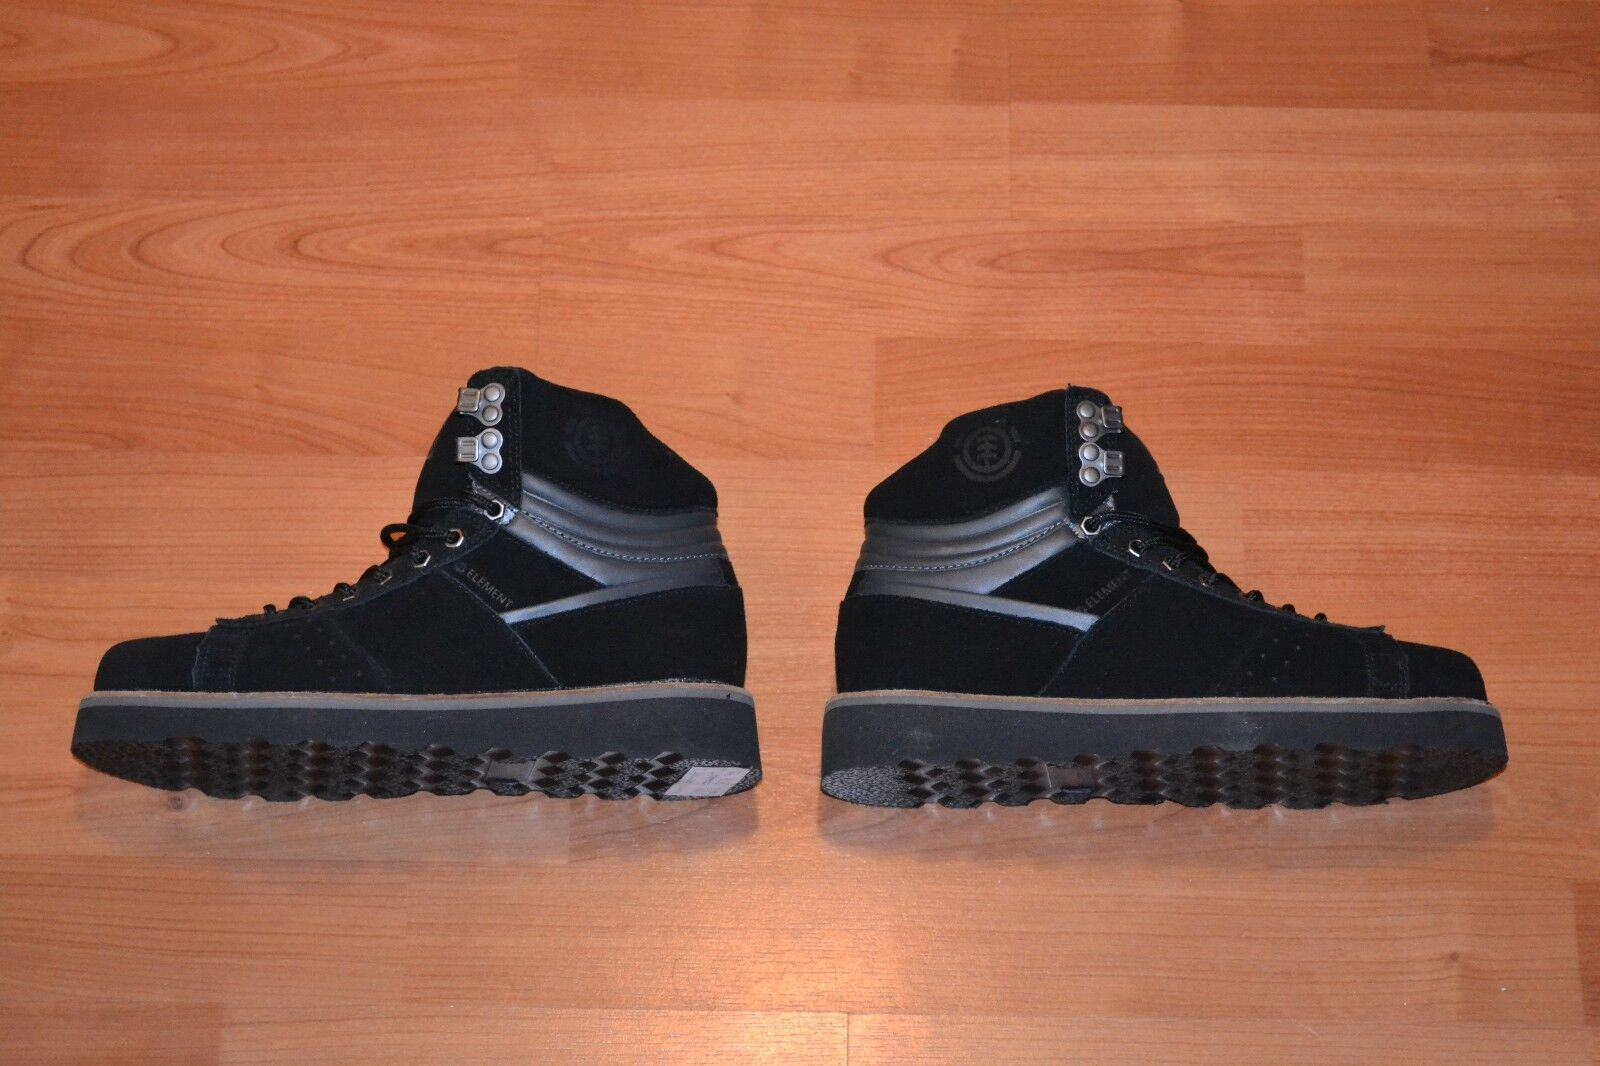 ELEMENT + MEN'S OMABOOT + SIZE 8 AND 9 + BLACK + LEATHER + BRAND NEW IN BOX